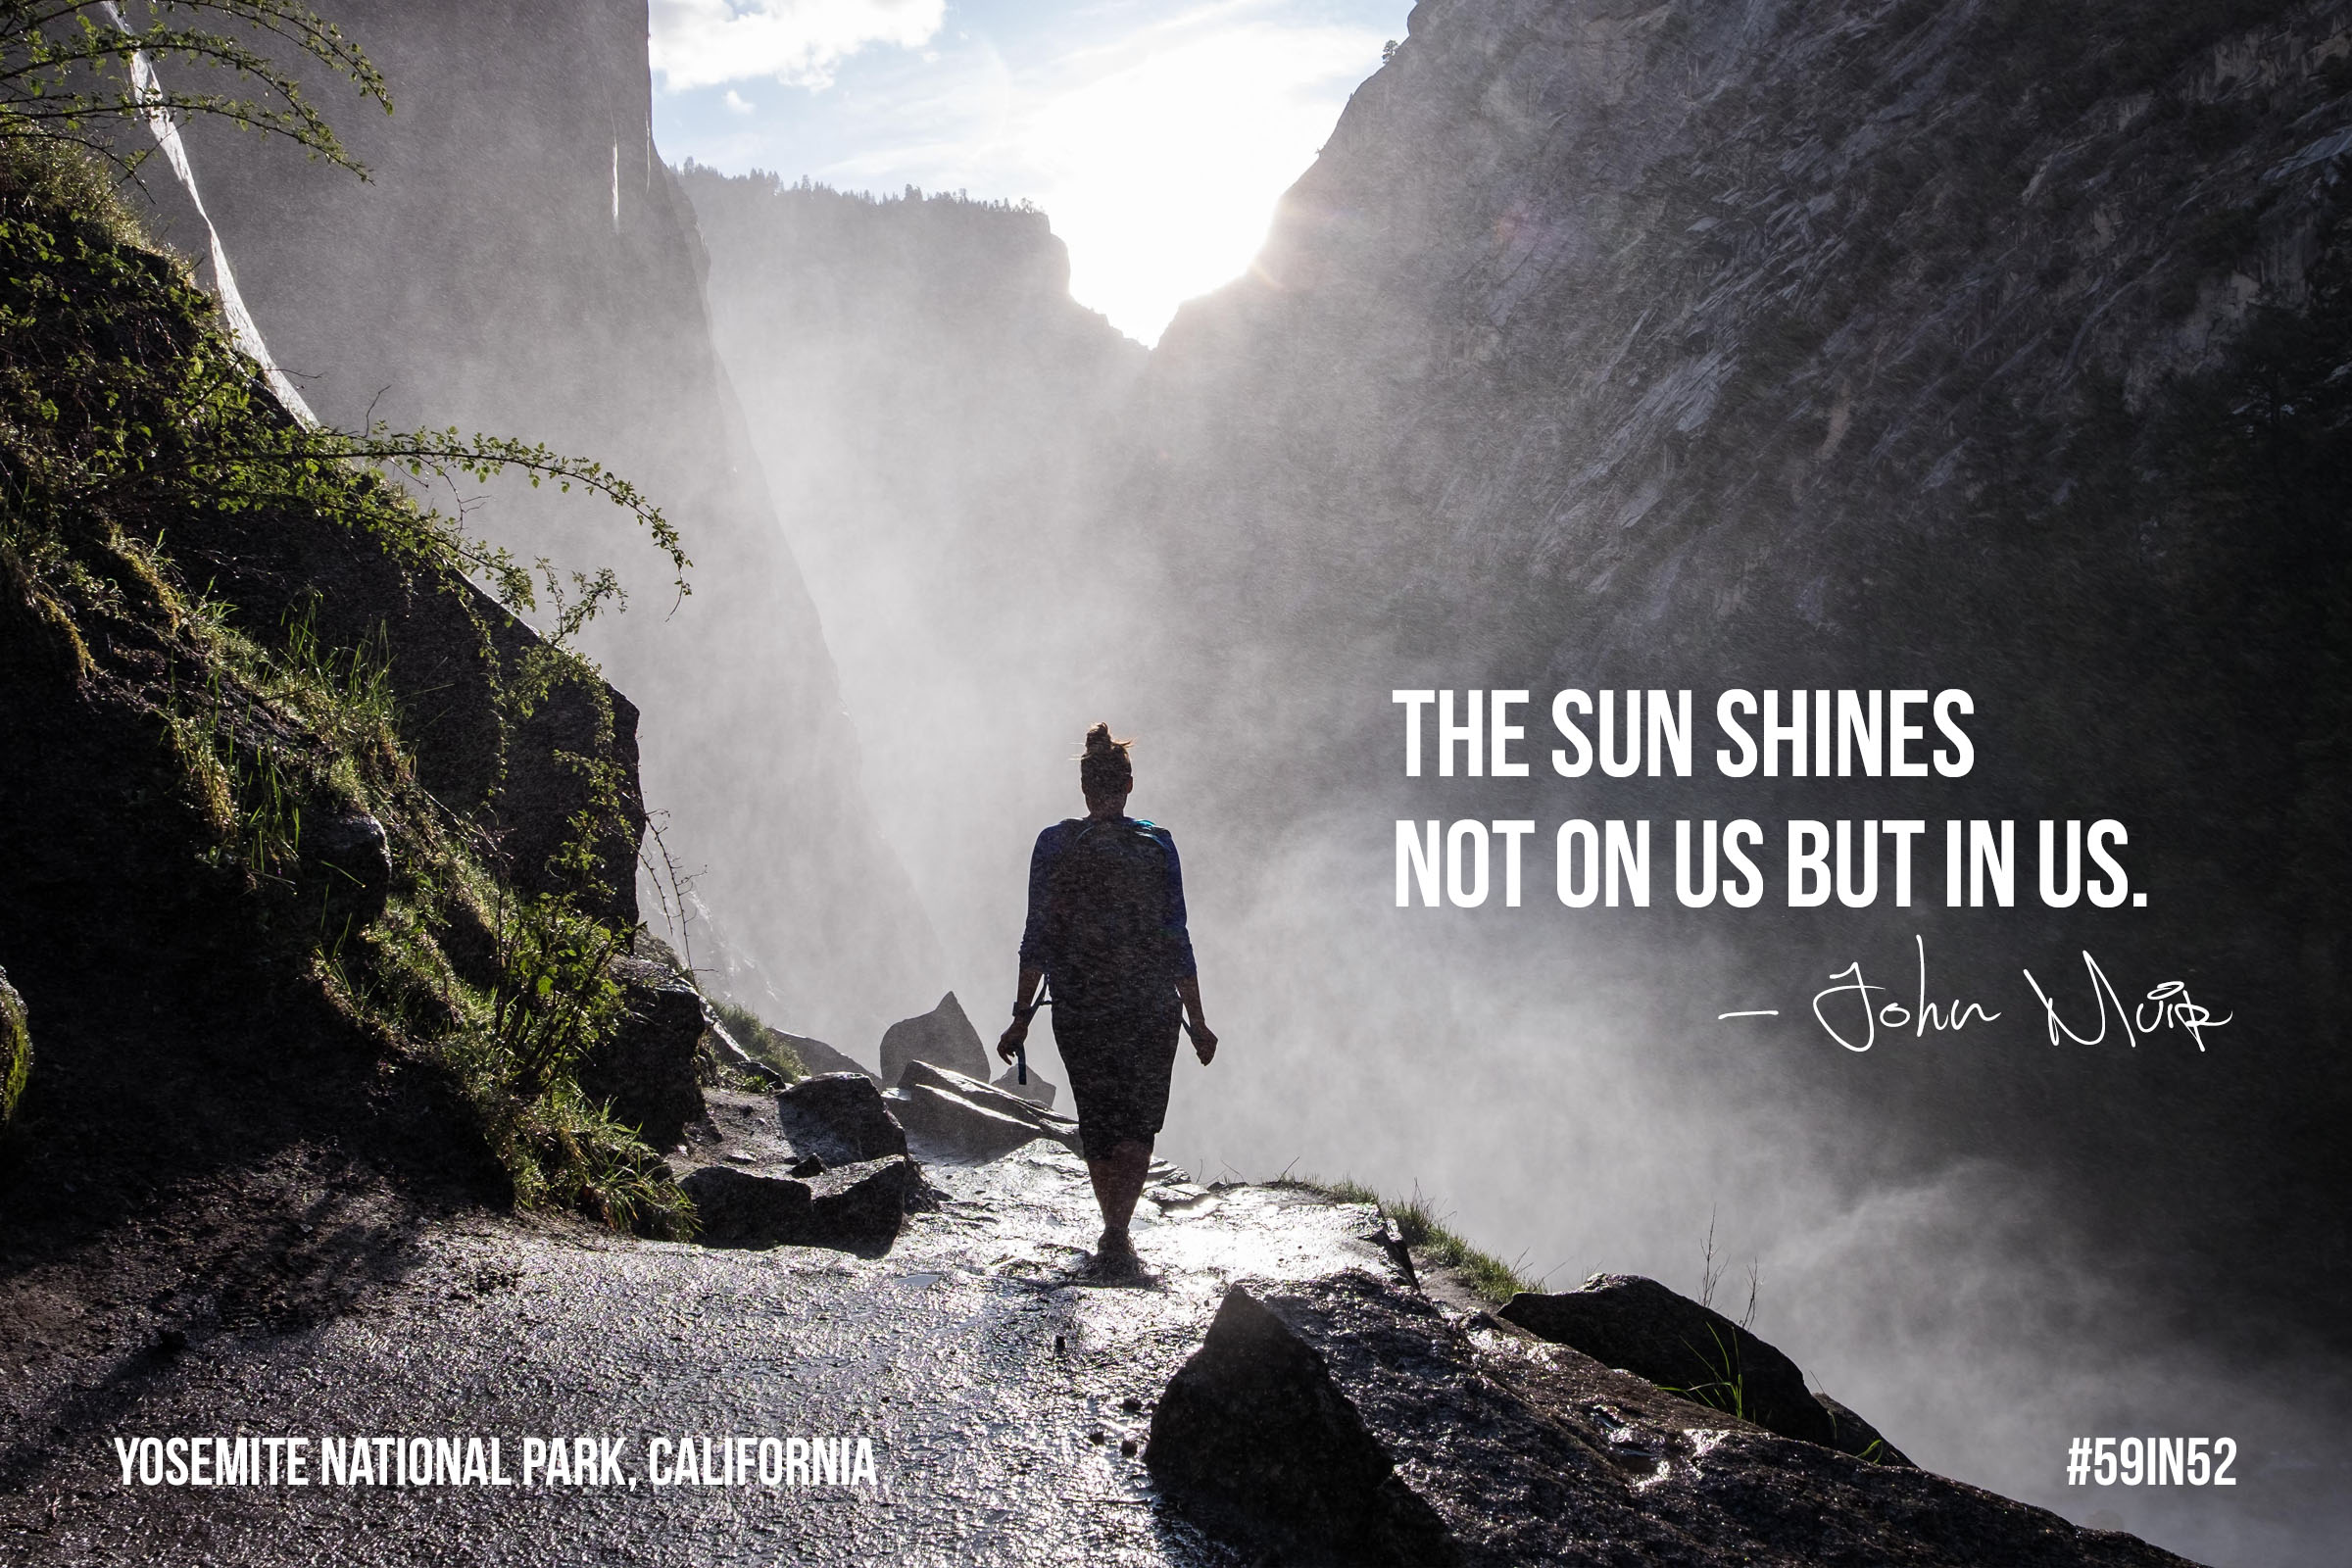 'The sun shines not on us but in us.' - John Muir